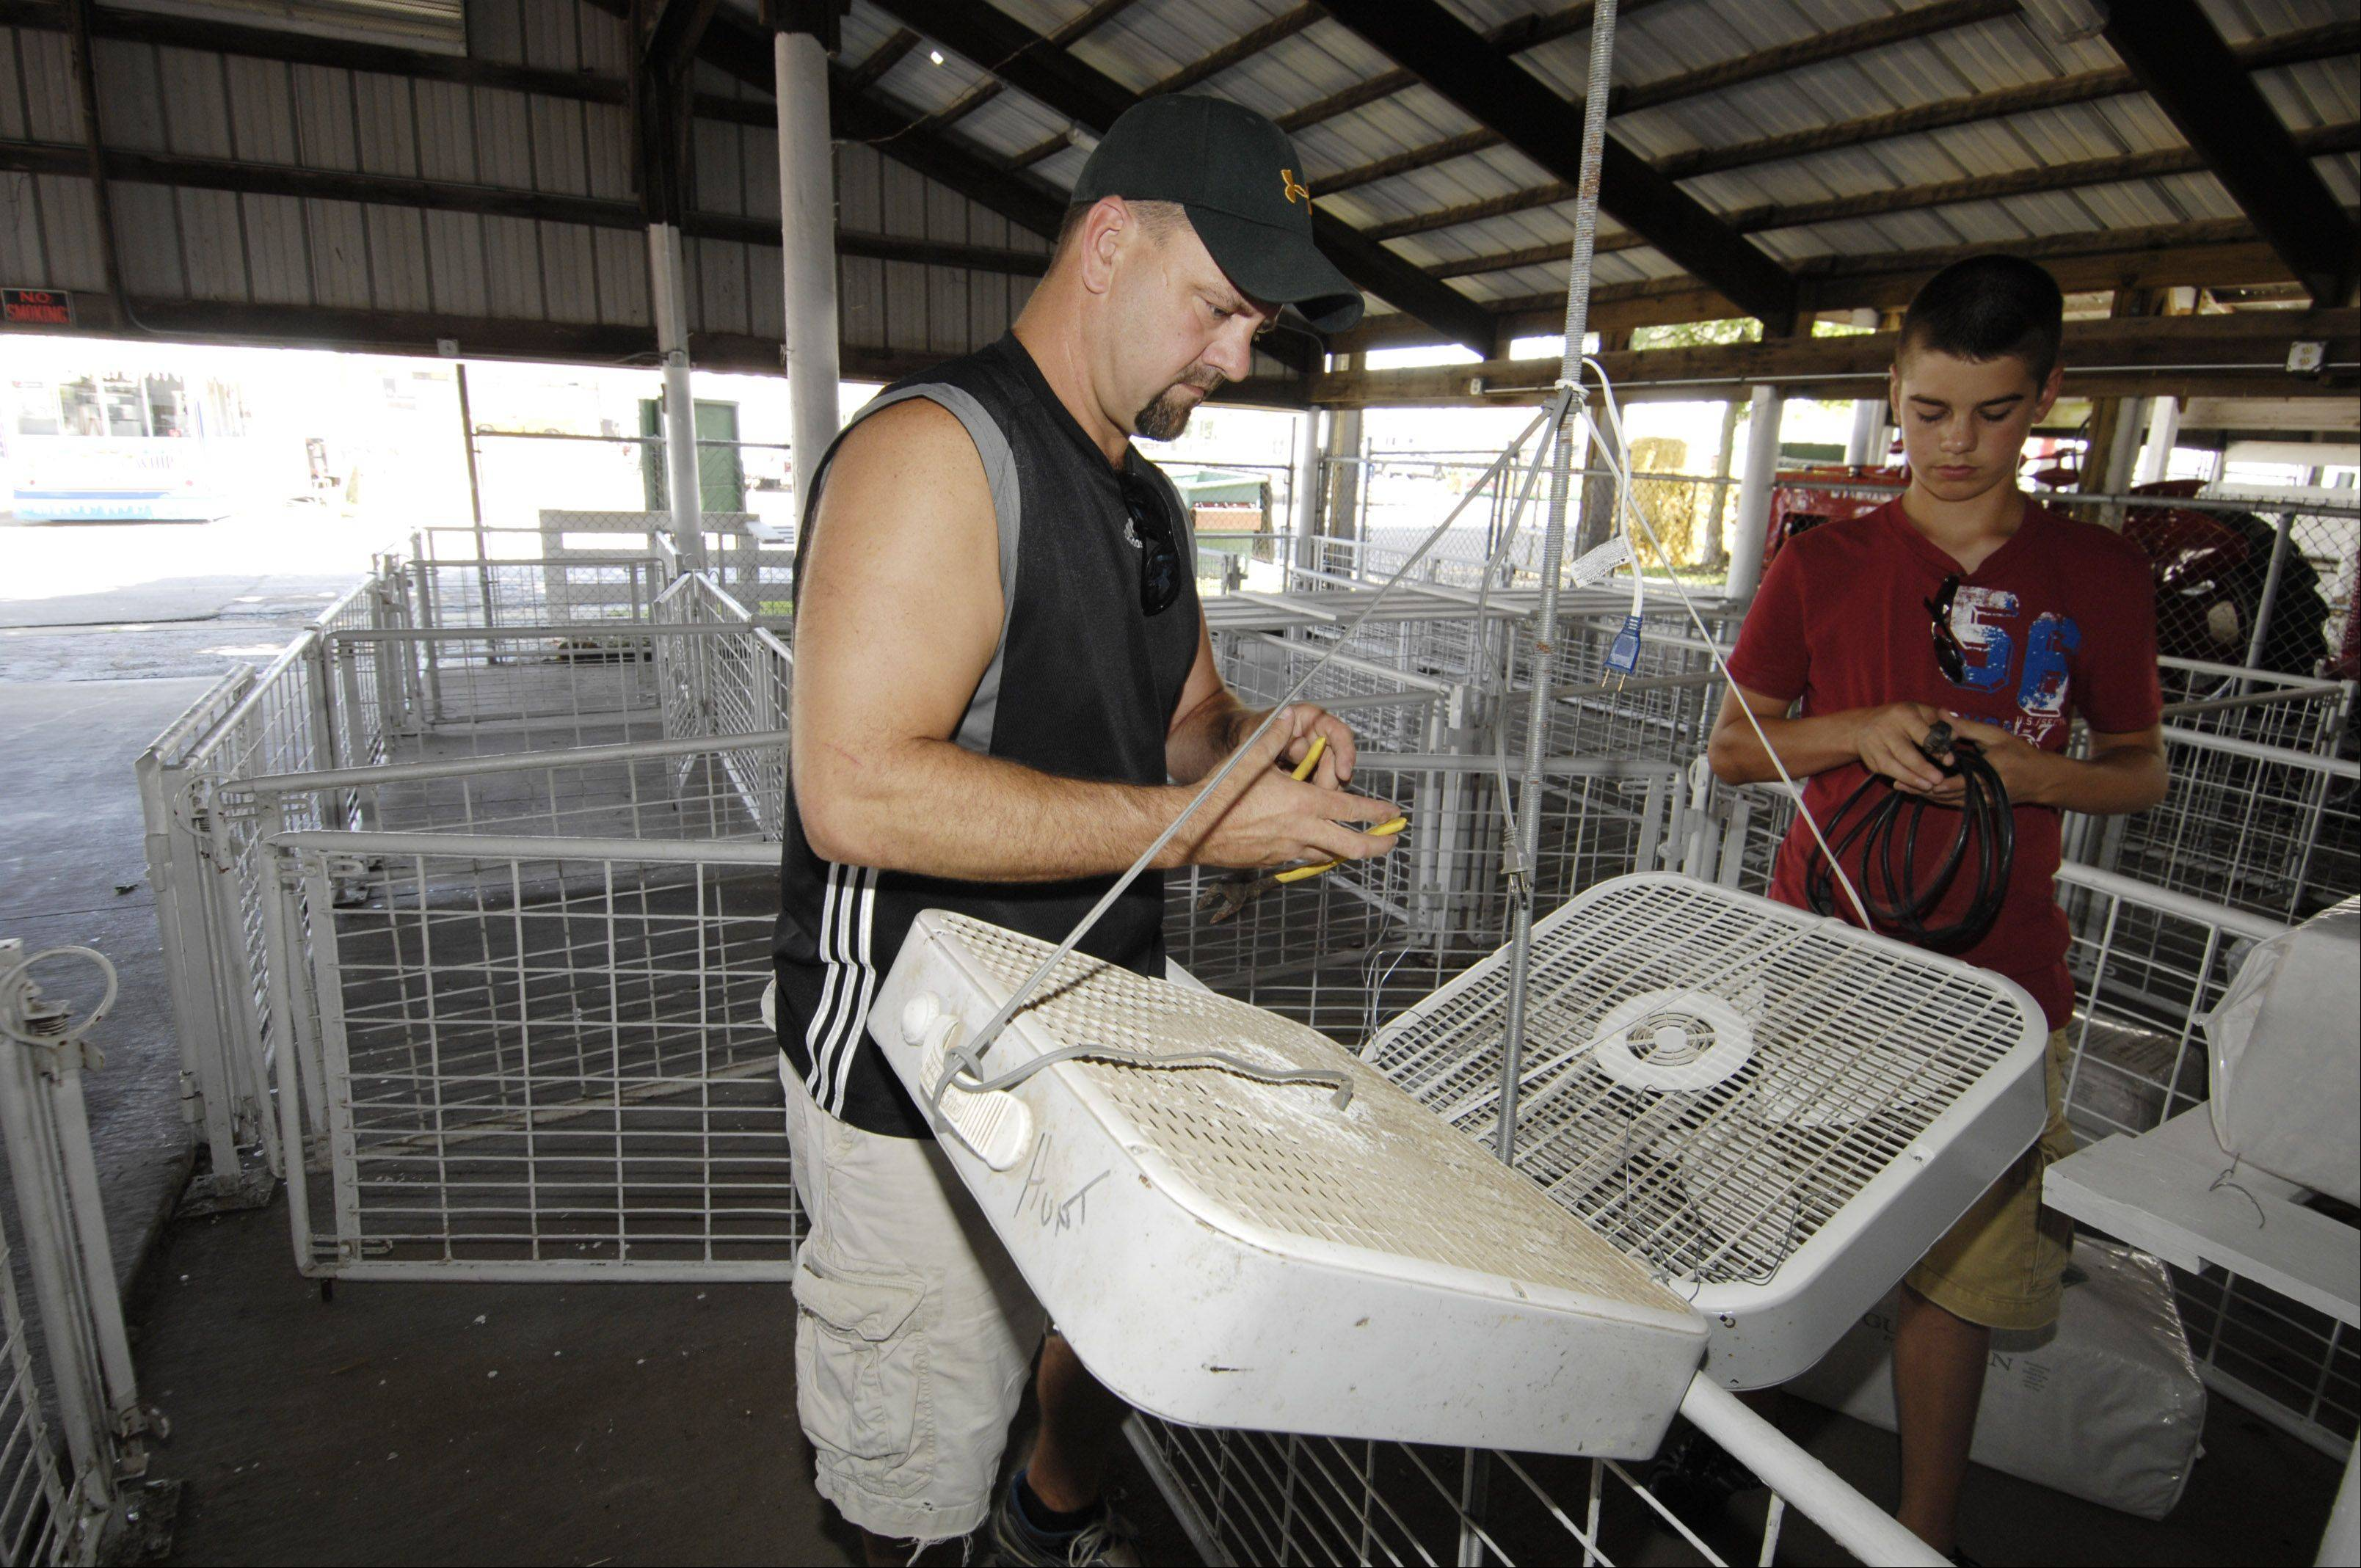 Curtain set to rise on DuPage County Fair